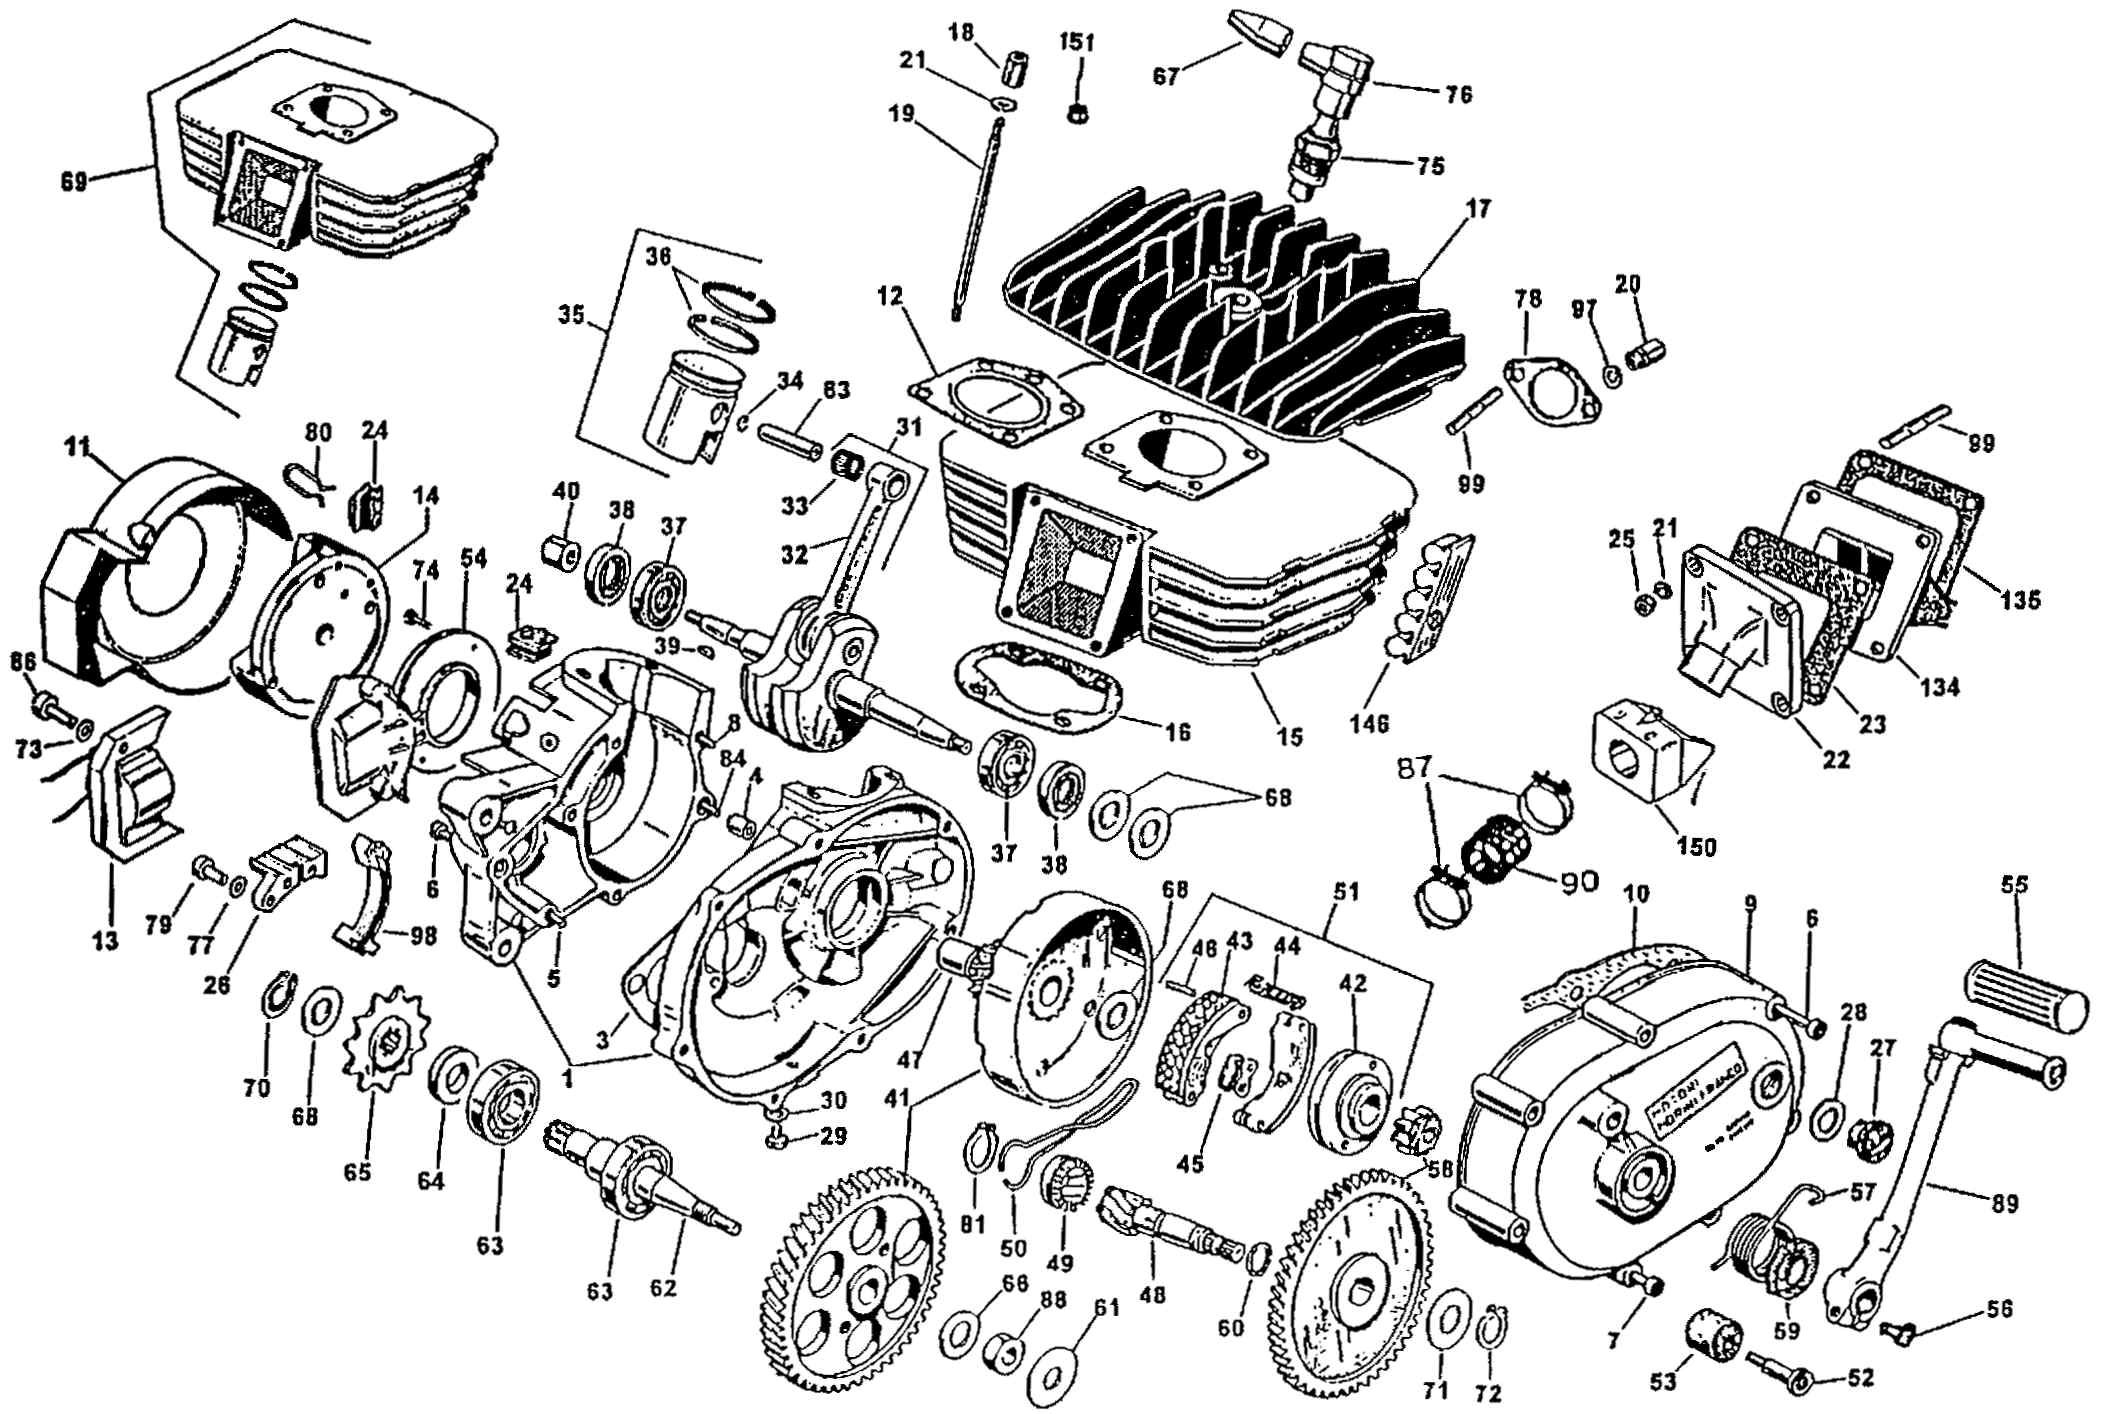 Cross Section Of A Harley Evolution Engine Diagram Not Lossing Evo Motorcycle Wiring Library Rh 63 Skriptoase De Radial